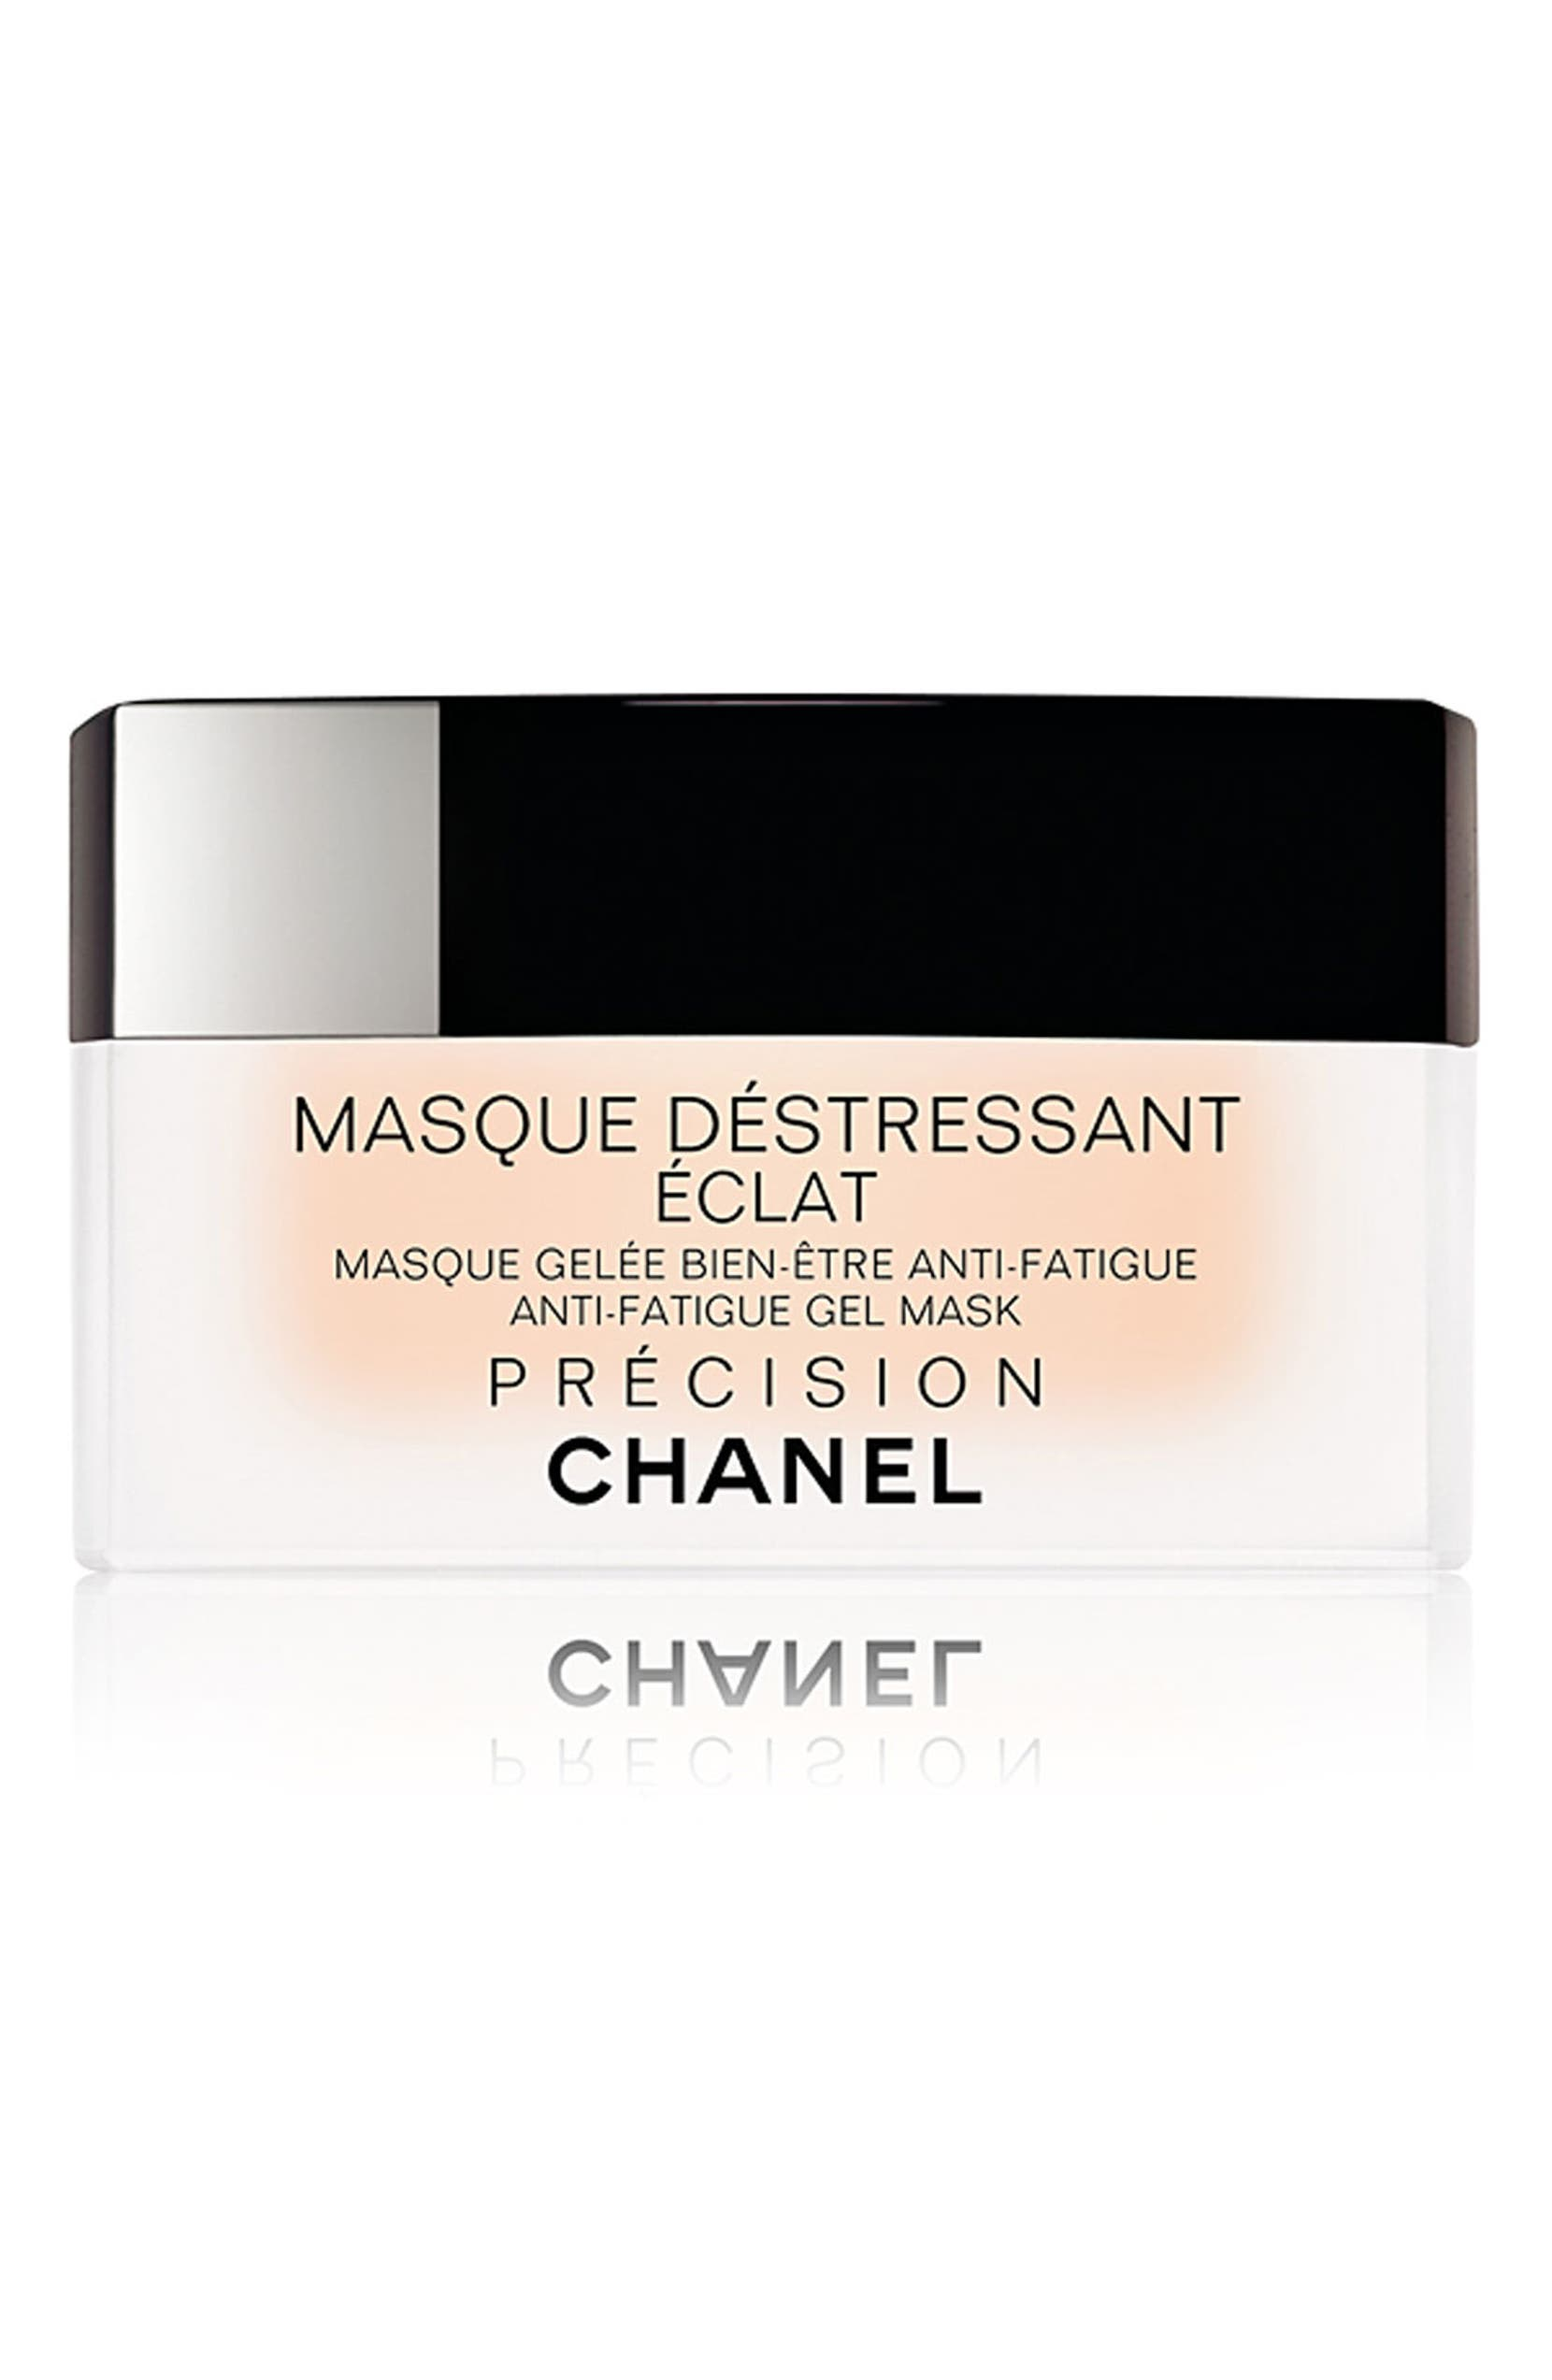 CHANEL MASQUE D  201 STRESSANT   201 CLAT ANTI-FATIGUE GEL MASK   Nordstrom a5fa54f5ebb5